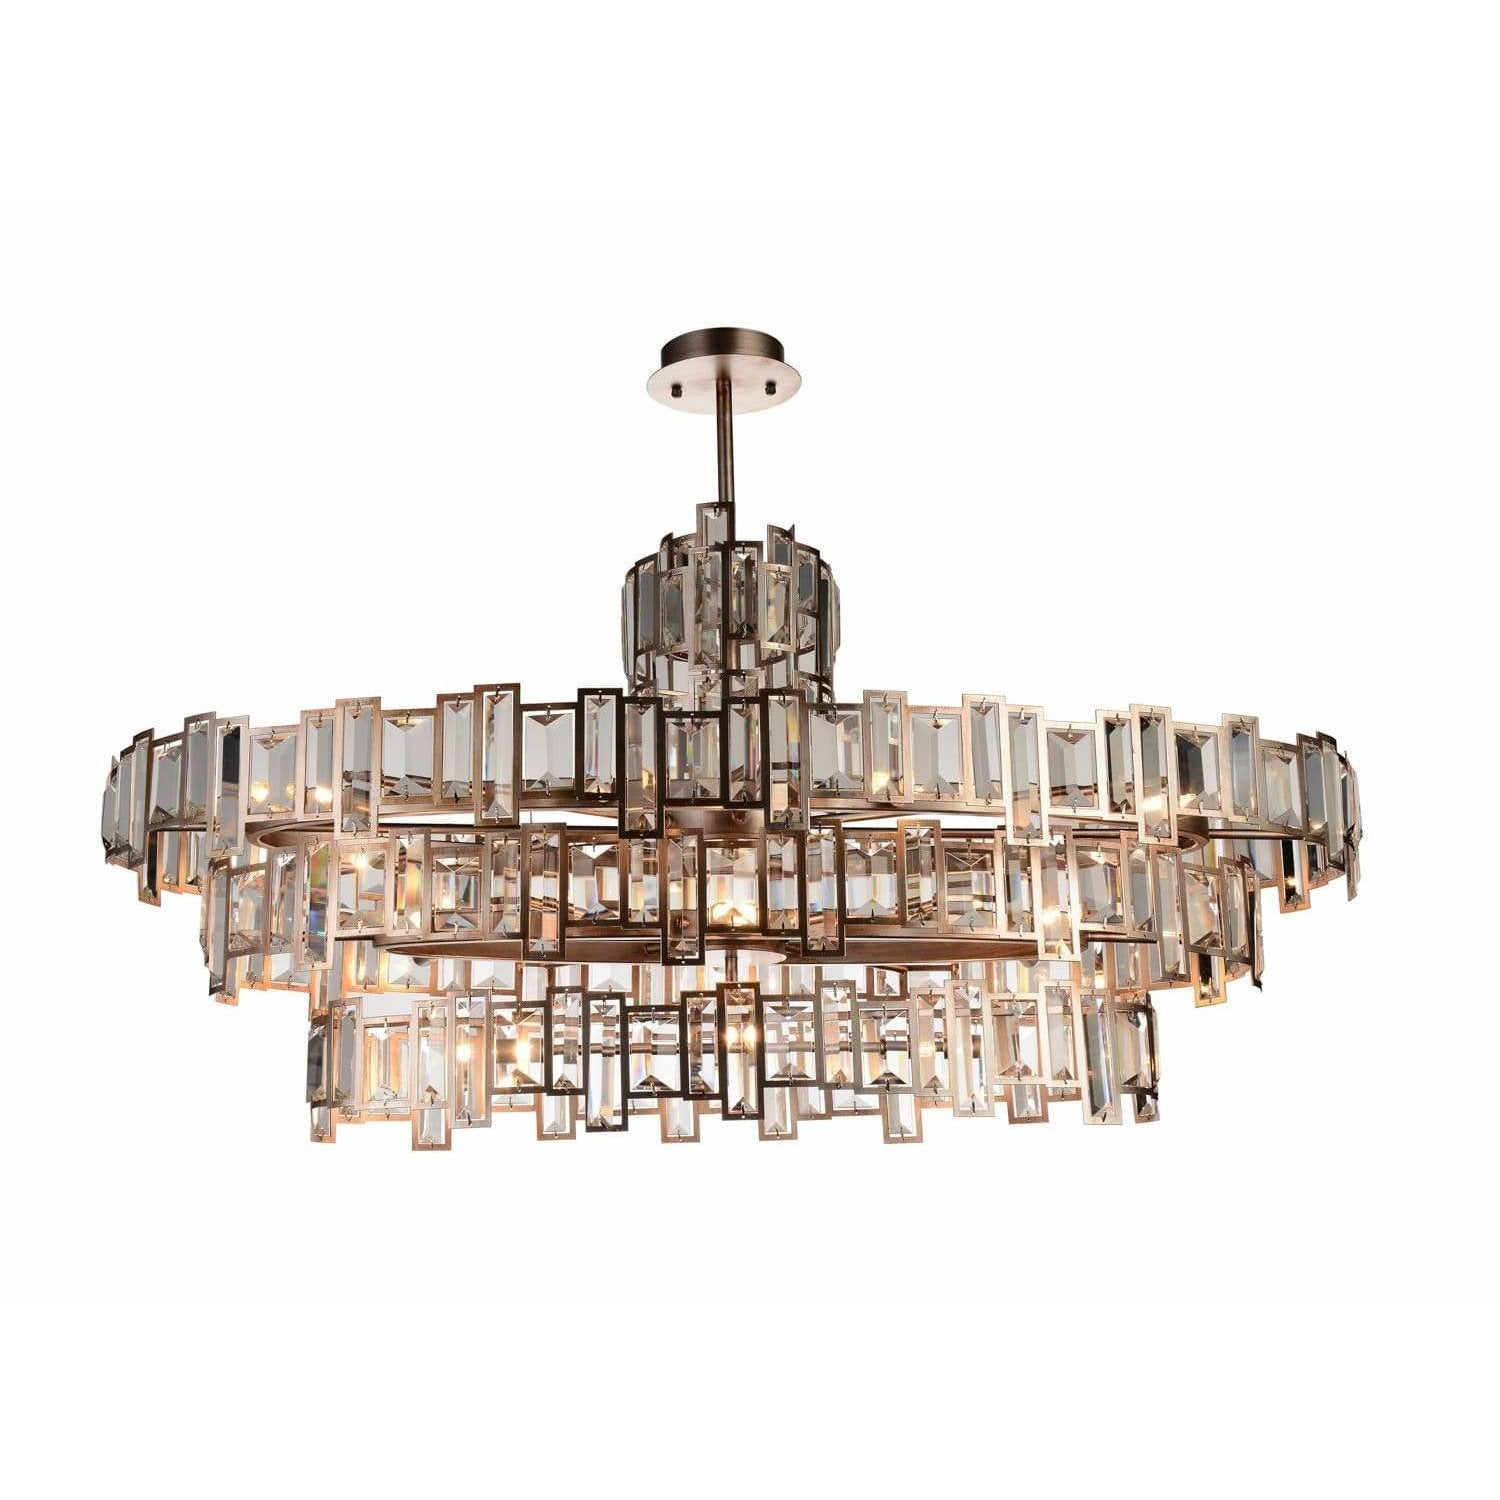 CWI Lighting Chandeliers Champagne / K9 Clear Quida 21 Light Down Chandelier with Champagne finish by CWI Lighting 9903P44-21-193